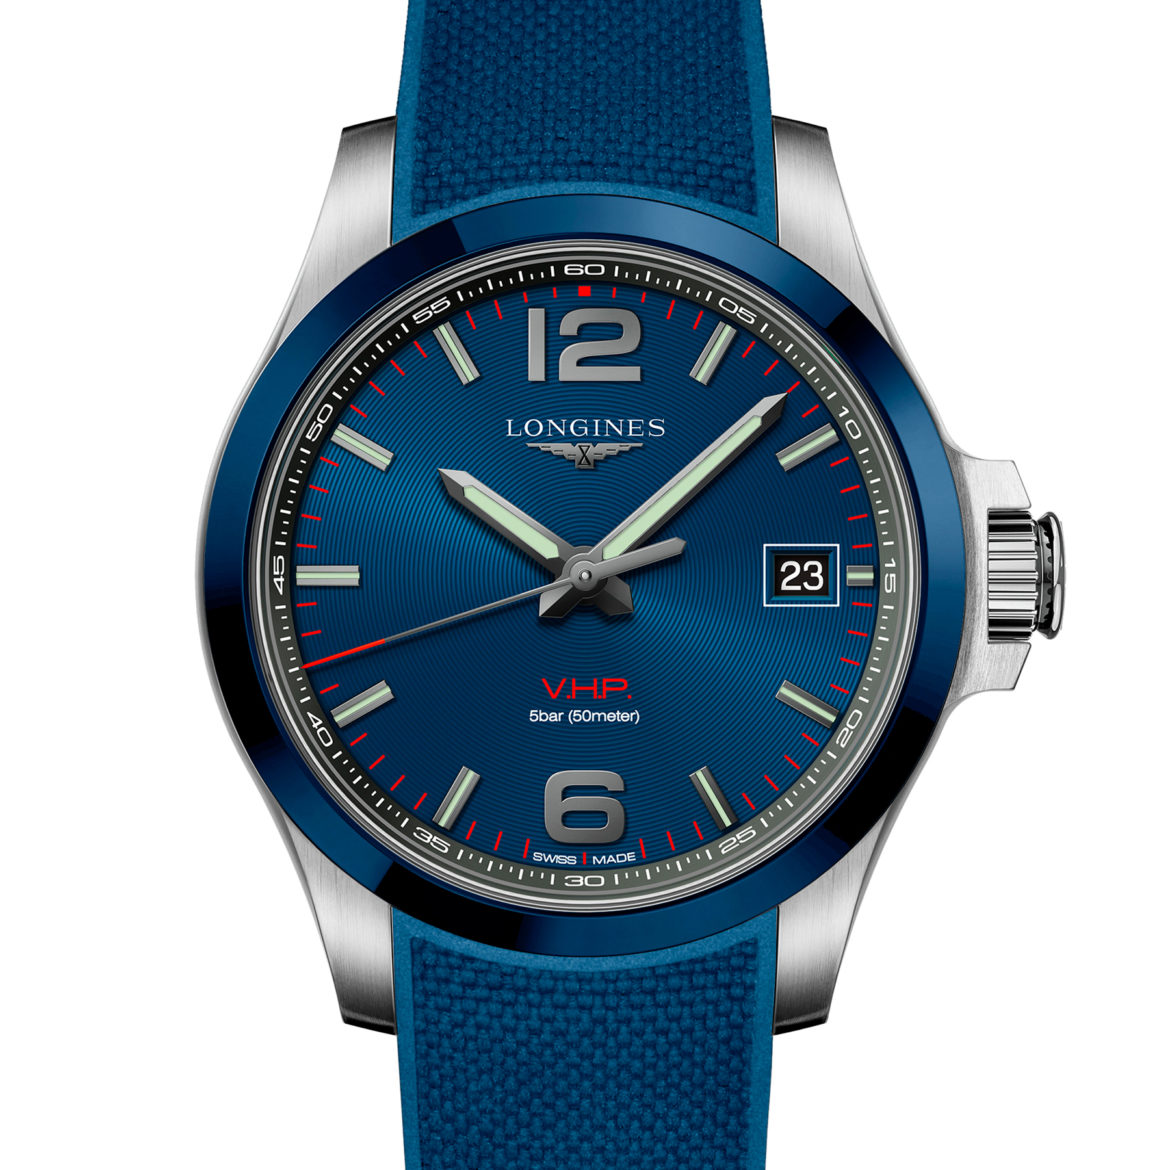 LONGINES</br/>Conquest VPH </br/>L37194969